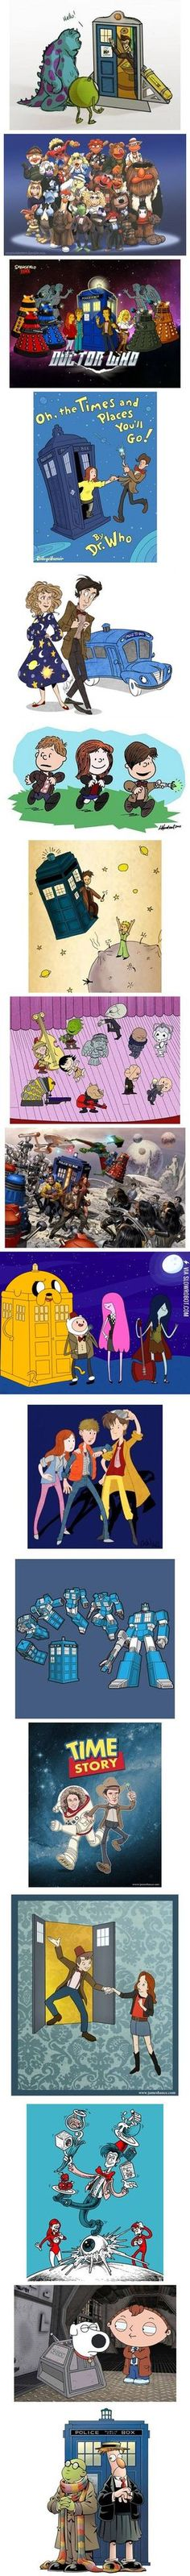 Doctor Who mash ups. I can say I love this and The Little Pronce is my favorite book and it makes me happy to see that someone mashed that with Doctor Who Doctor Who, Eighth Doctor, Eleventh Doctor, Dr Who, Sherlock, Star Trek, Plus Tv, Fraggle Rock, Fandom Crossover